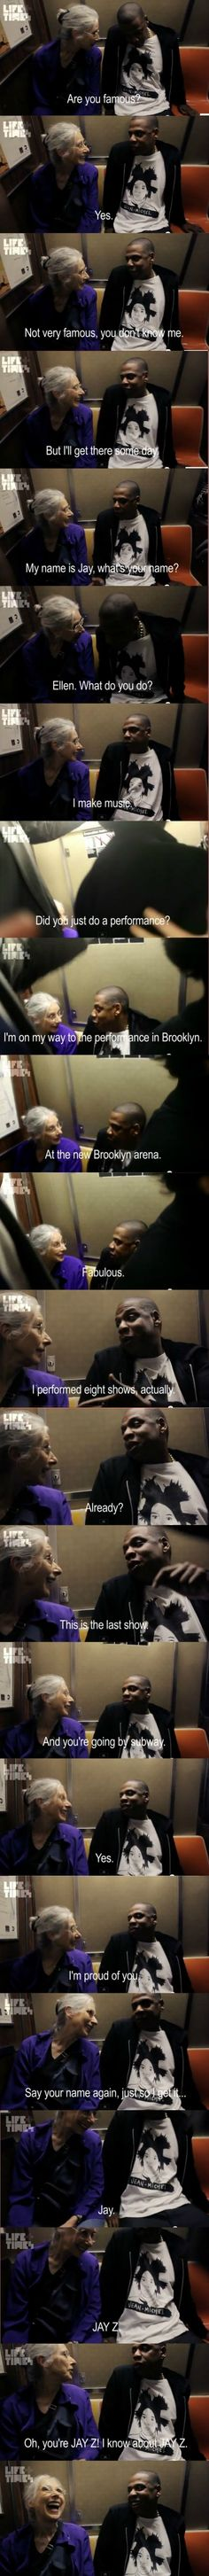 Oh, you're Jay Z!